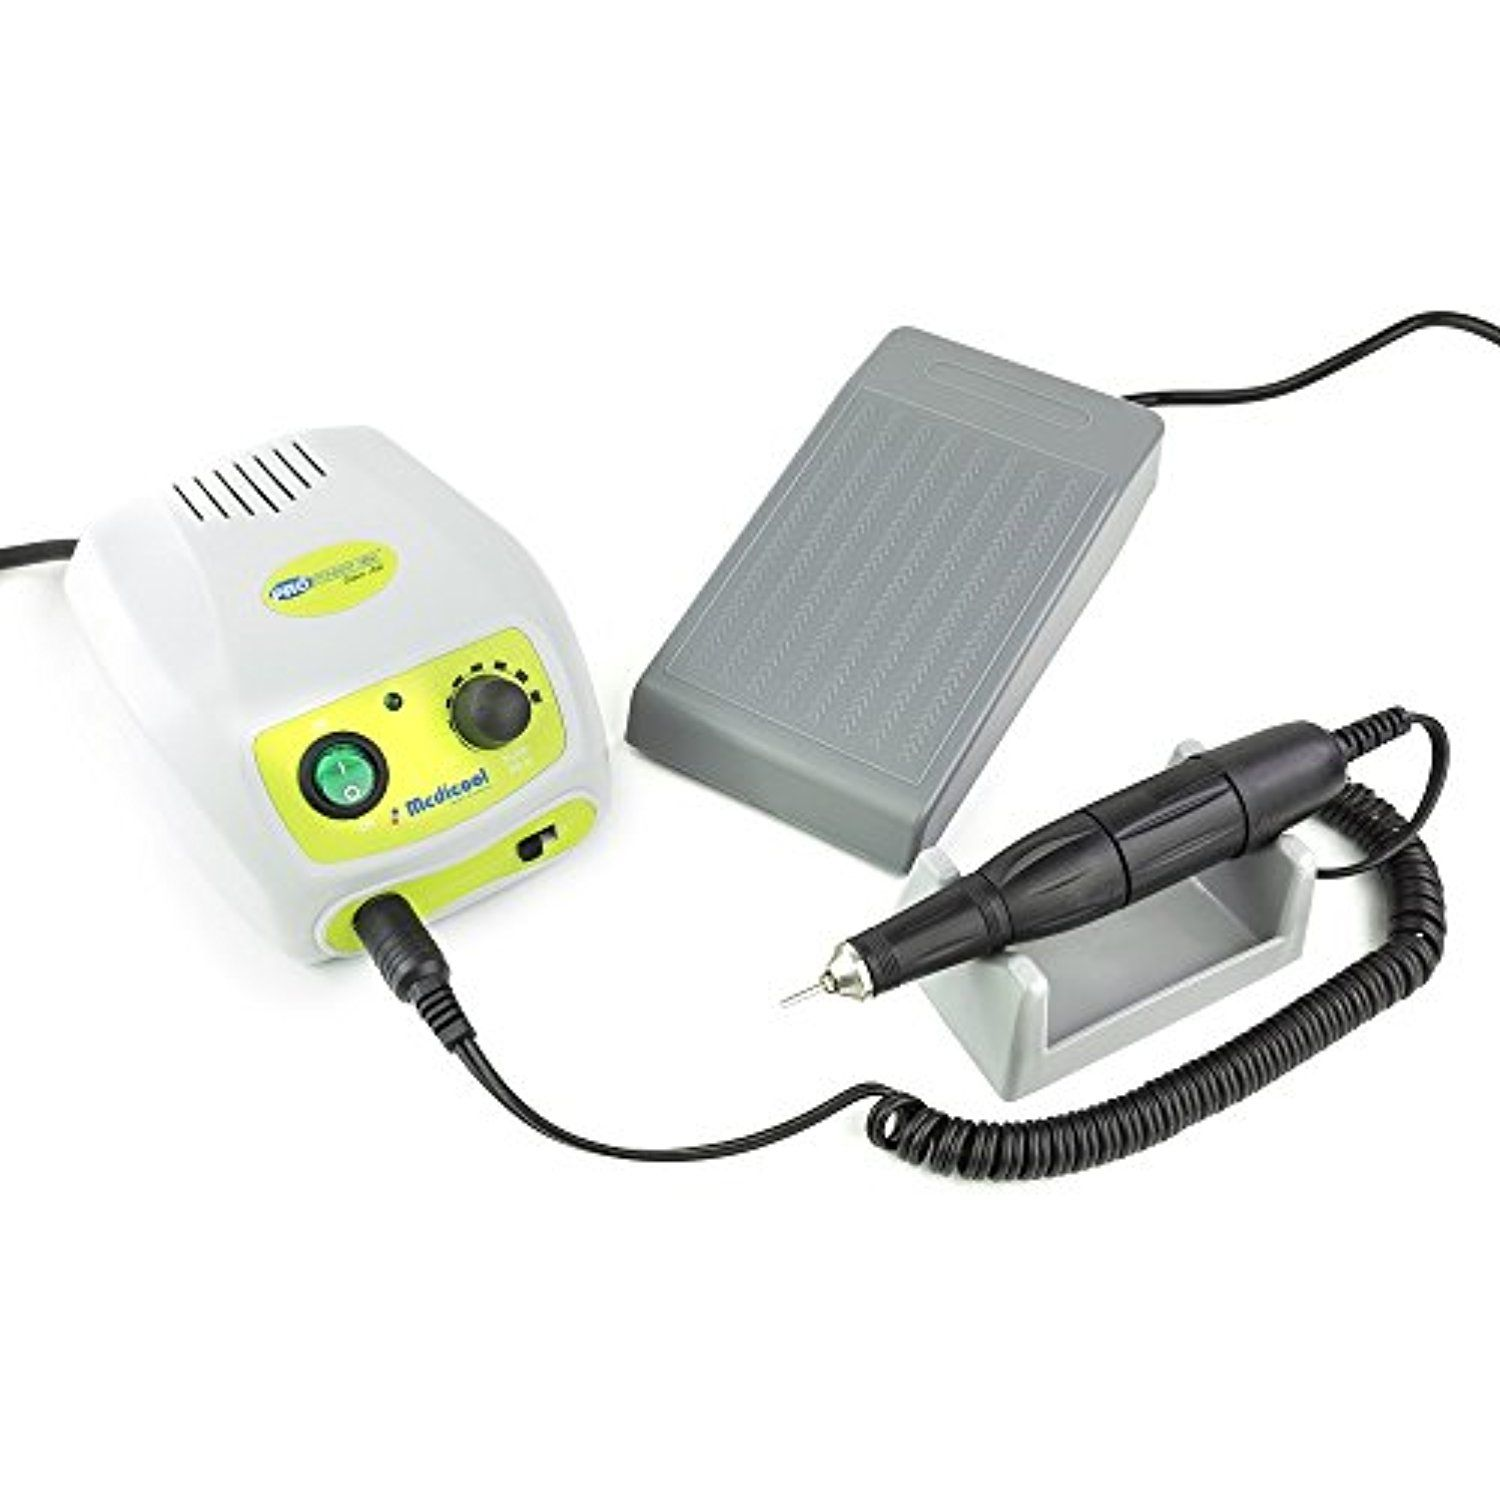 Medicool Nail Glide 2100 Professional Electric Files ** Learn more ...